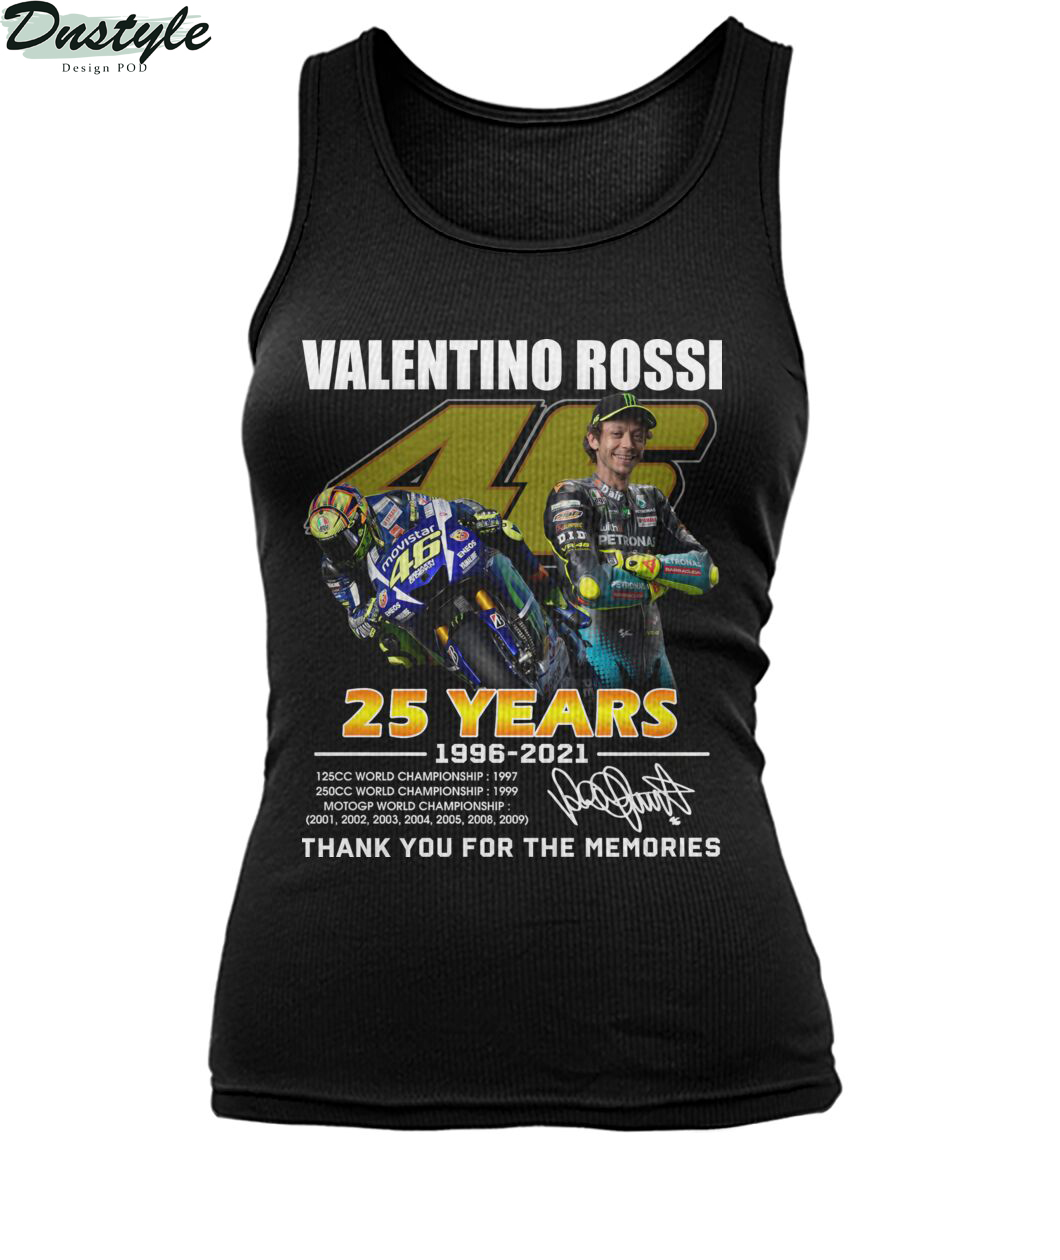 Valentino rossi 25 years thank you for the memories tank top